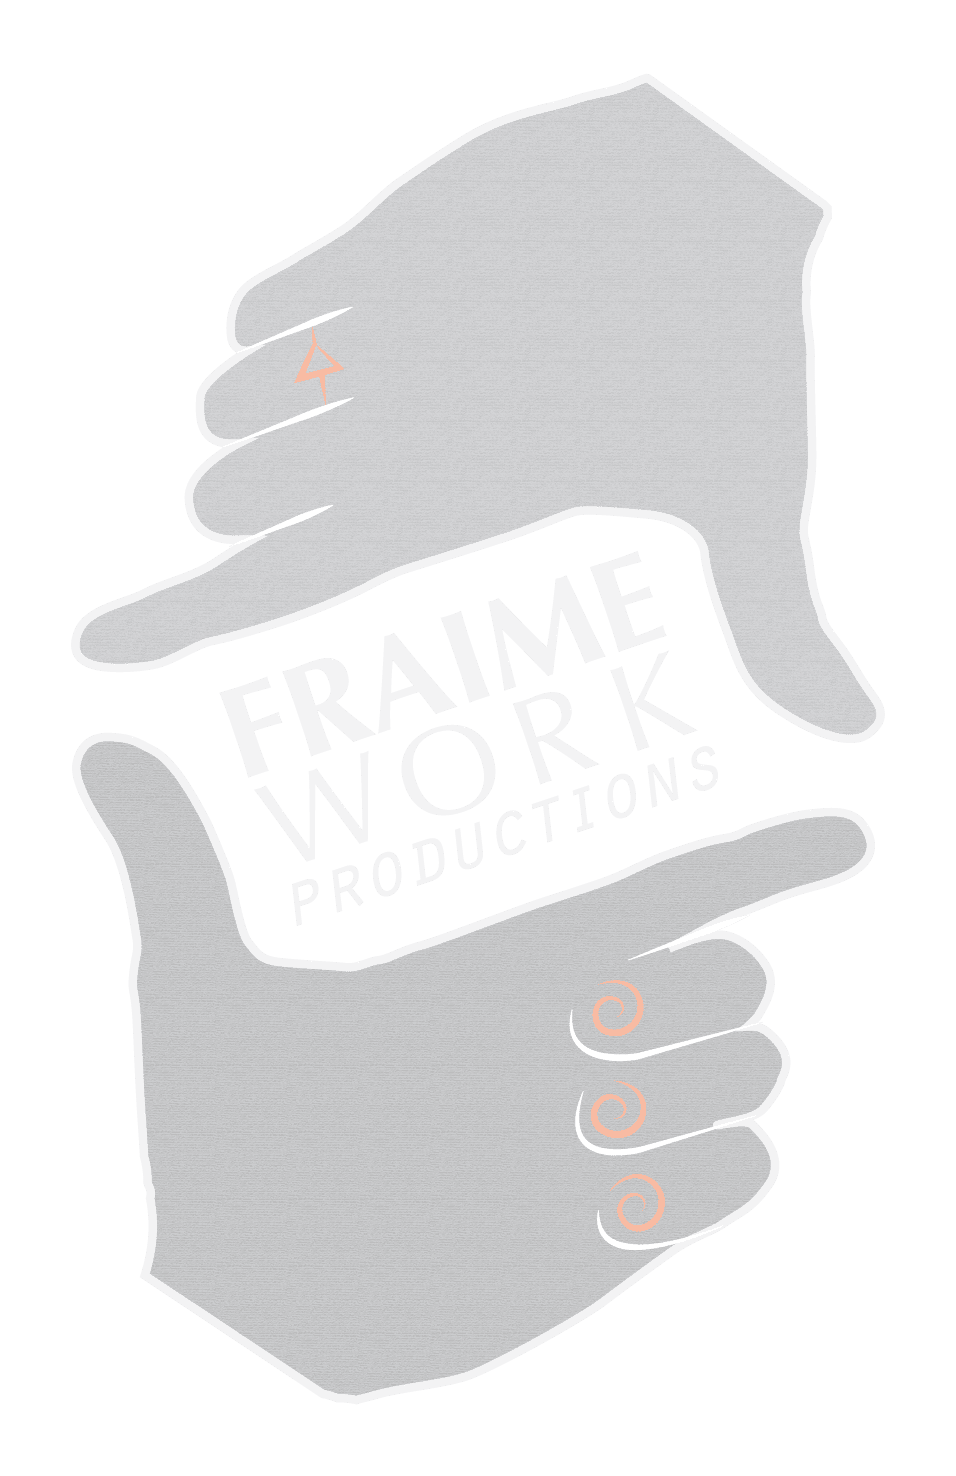 Fraimework Productions